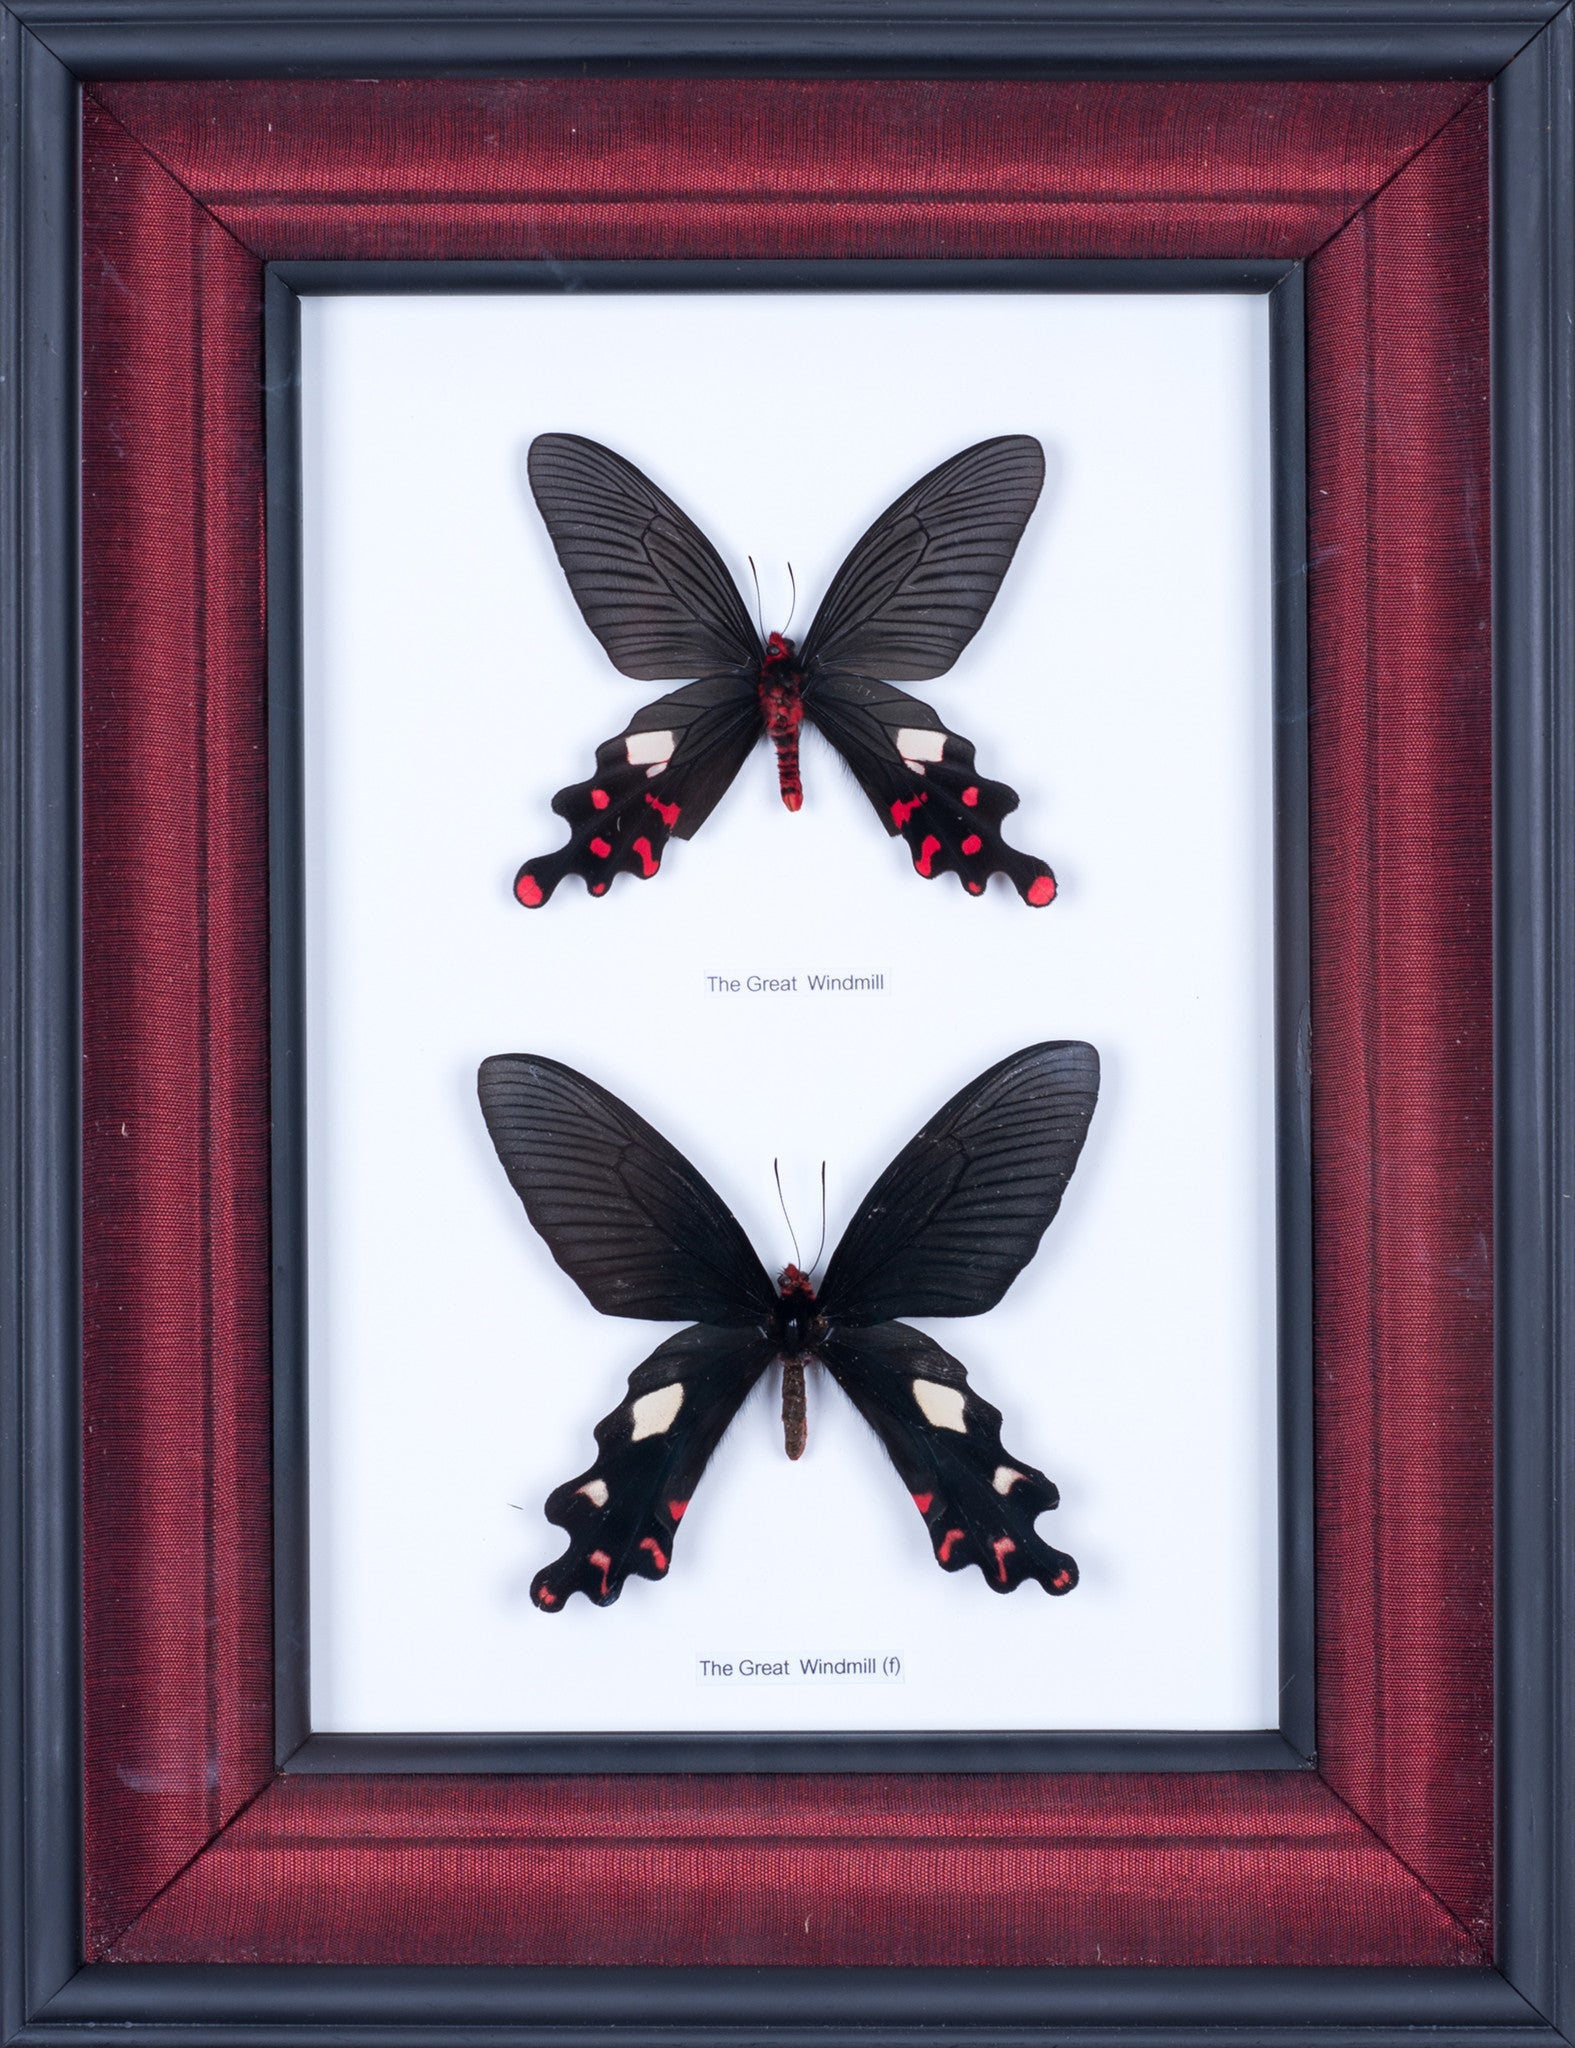 Exotic Framed Butterfly - Mulberry Silk Lining #403 - Bugs Direct Ltd